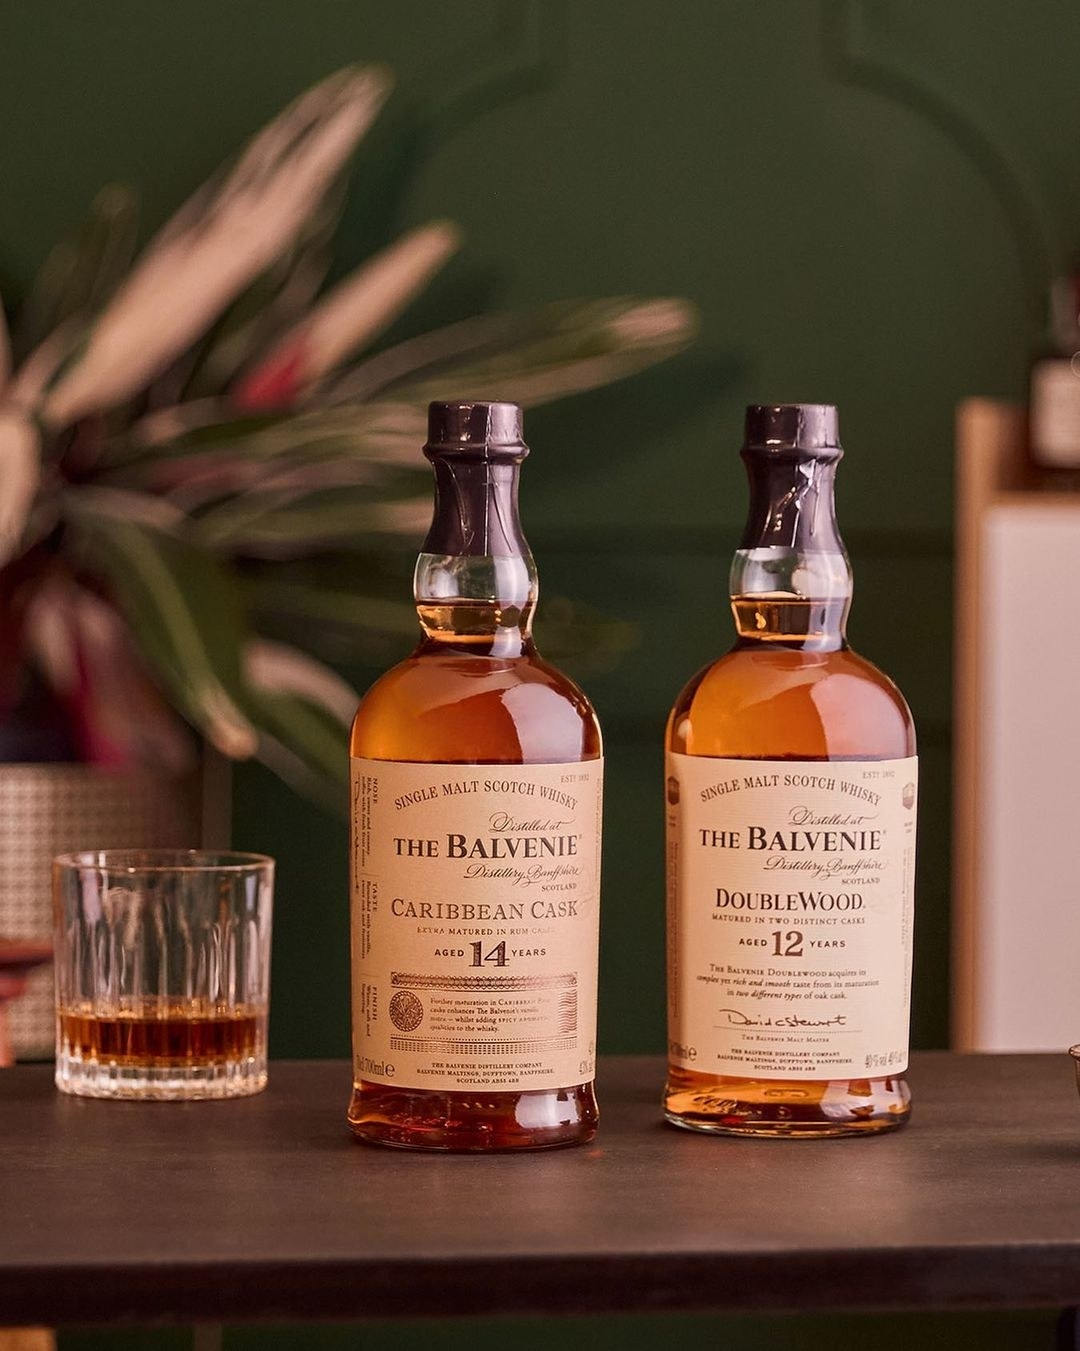 two bottles of Balvenie whiskey with a glass of whiskey in the background